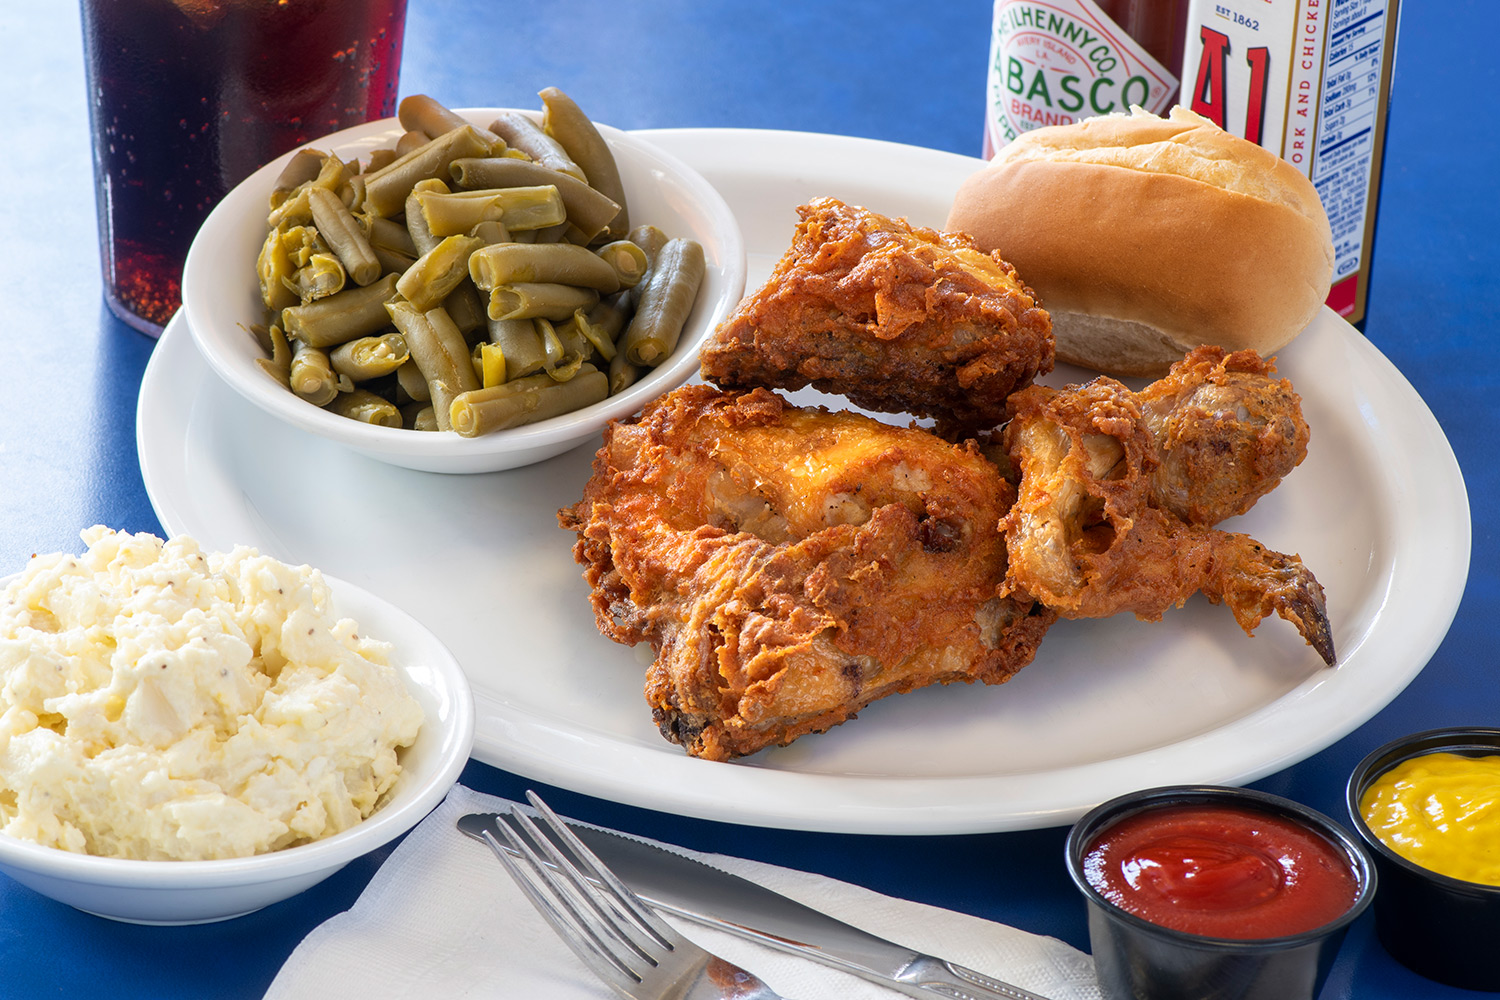 Fried Chicken with string beans and rolls mashed potatoes